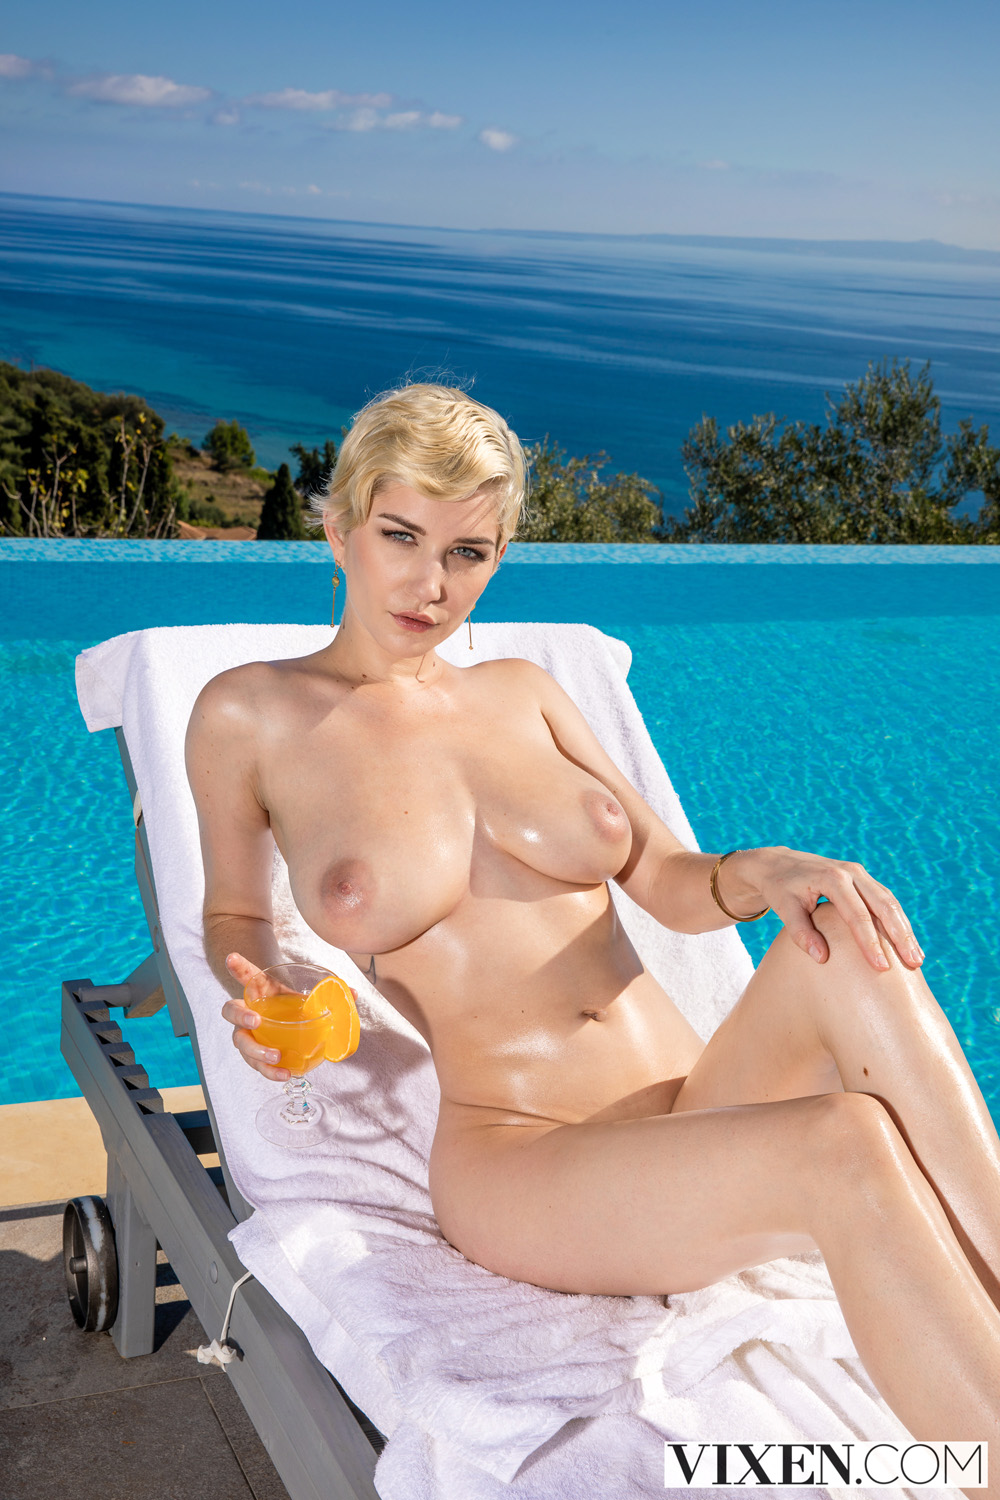 nude-hotties-from-the-s-young-girl-knobby-tits